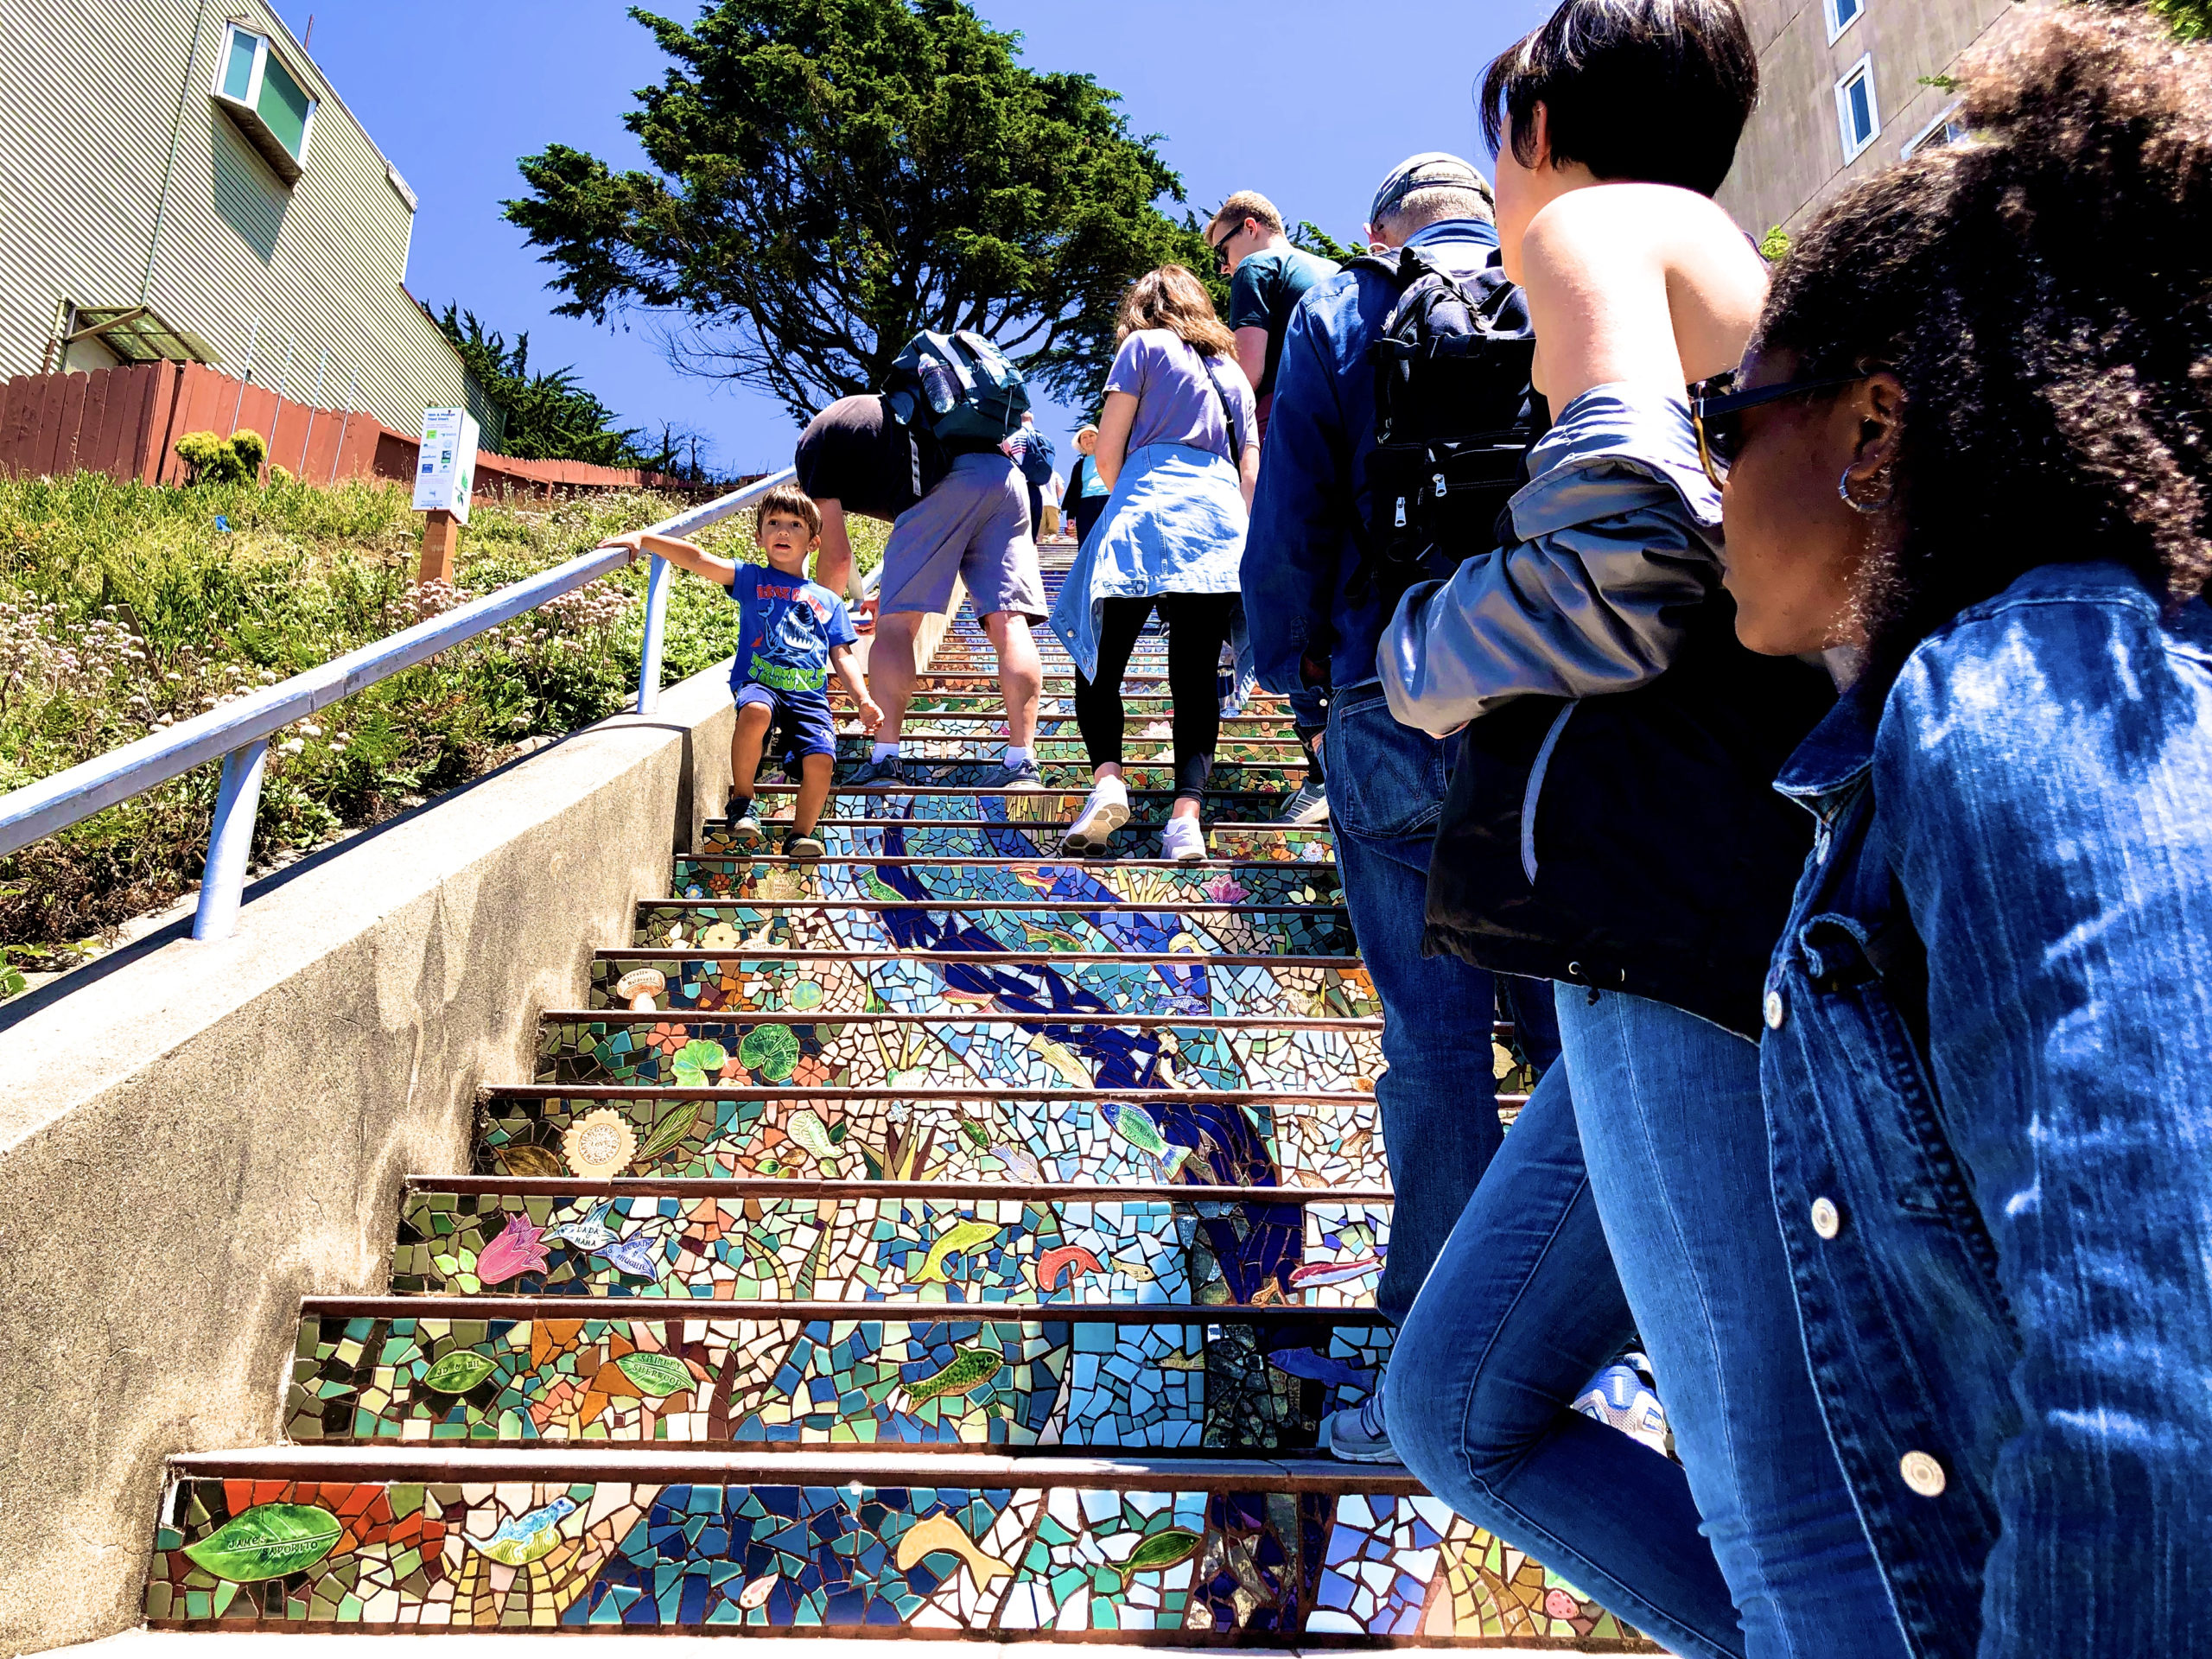 tour group climbing up 16th Avenue mosaic steps